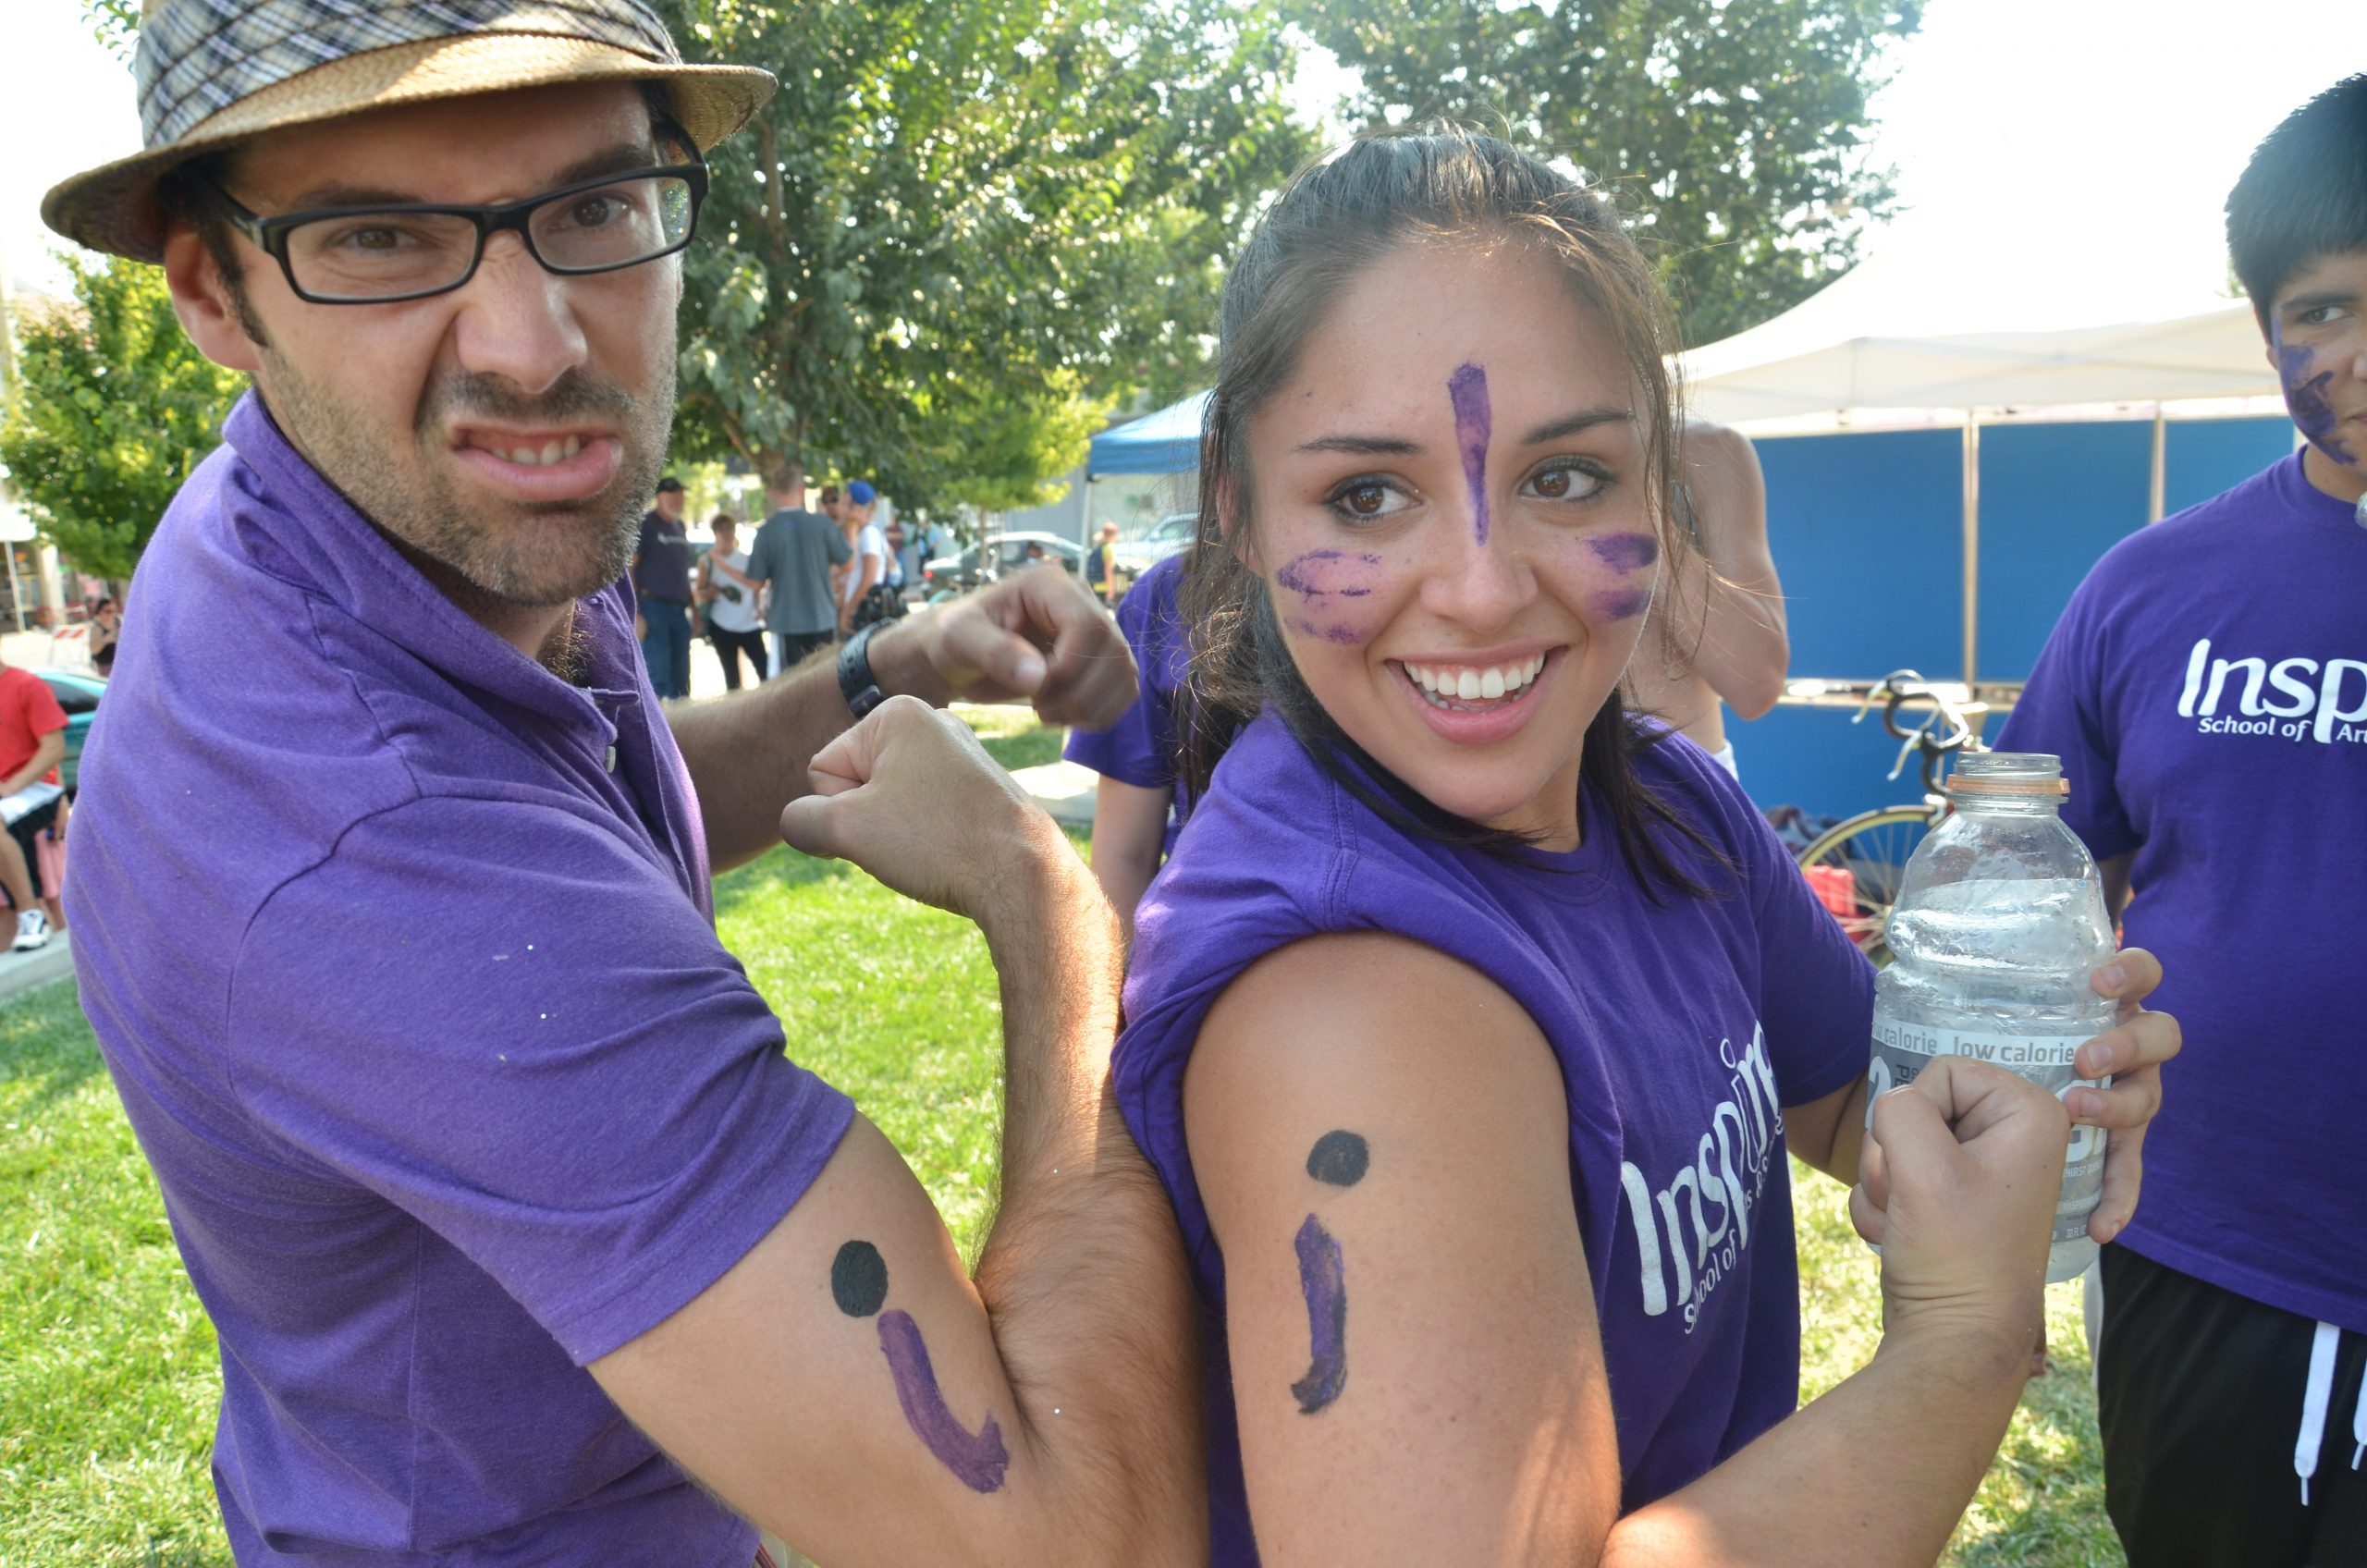 Teacher and student flexing with an i painted on their arm